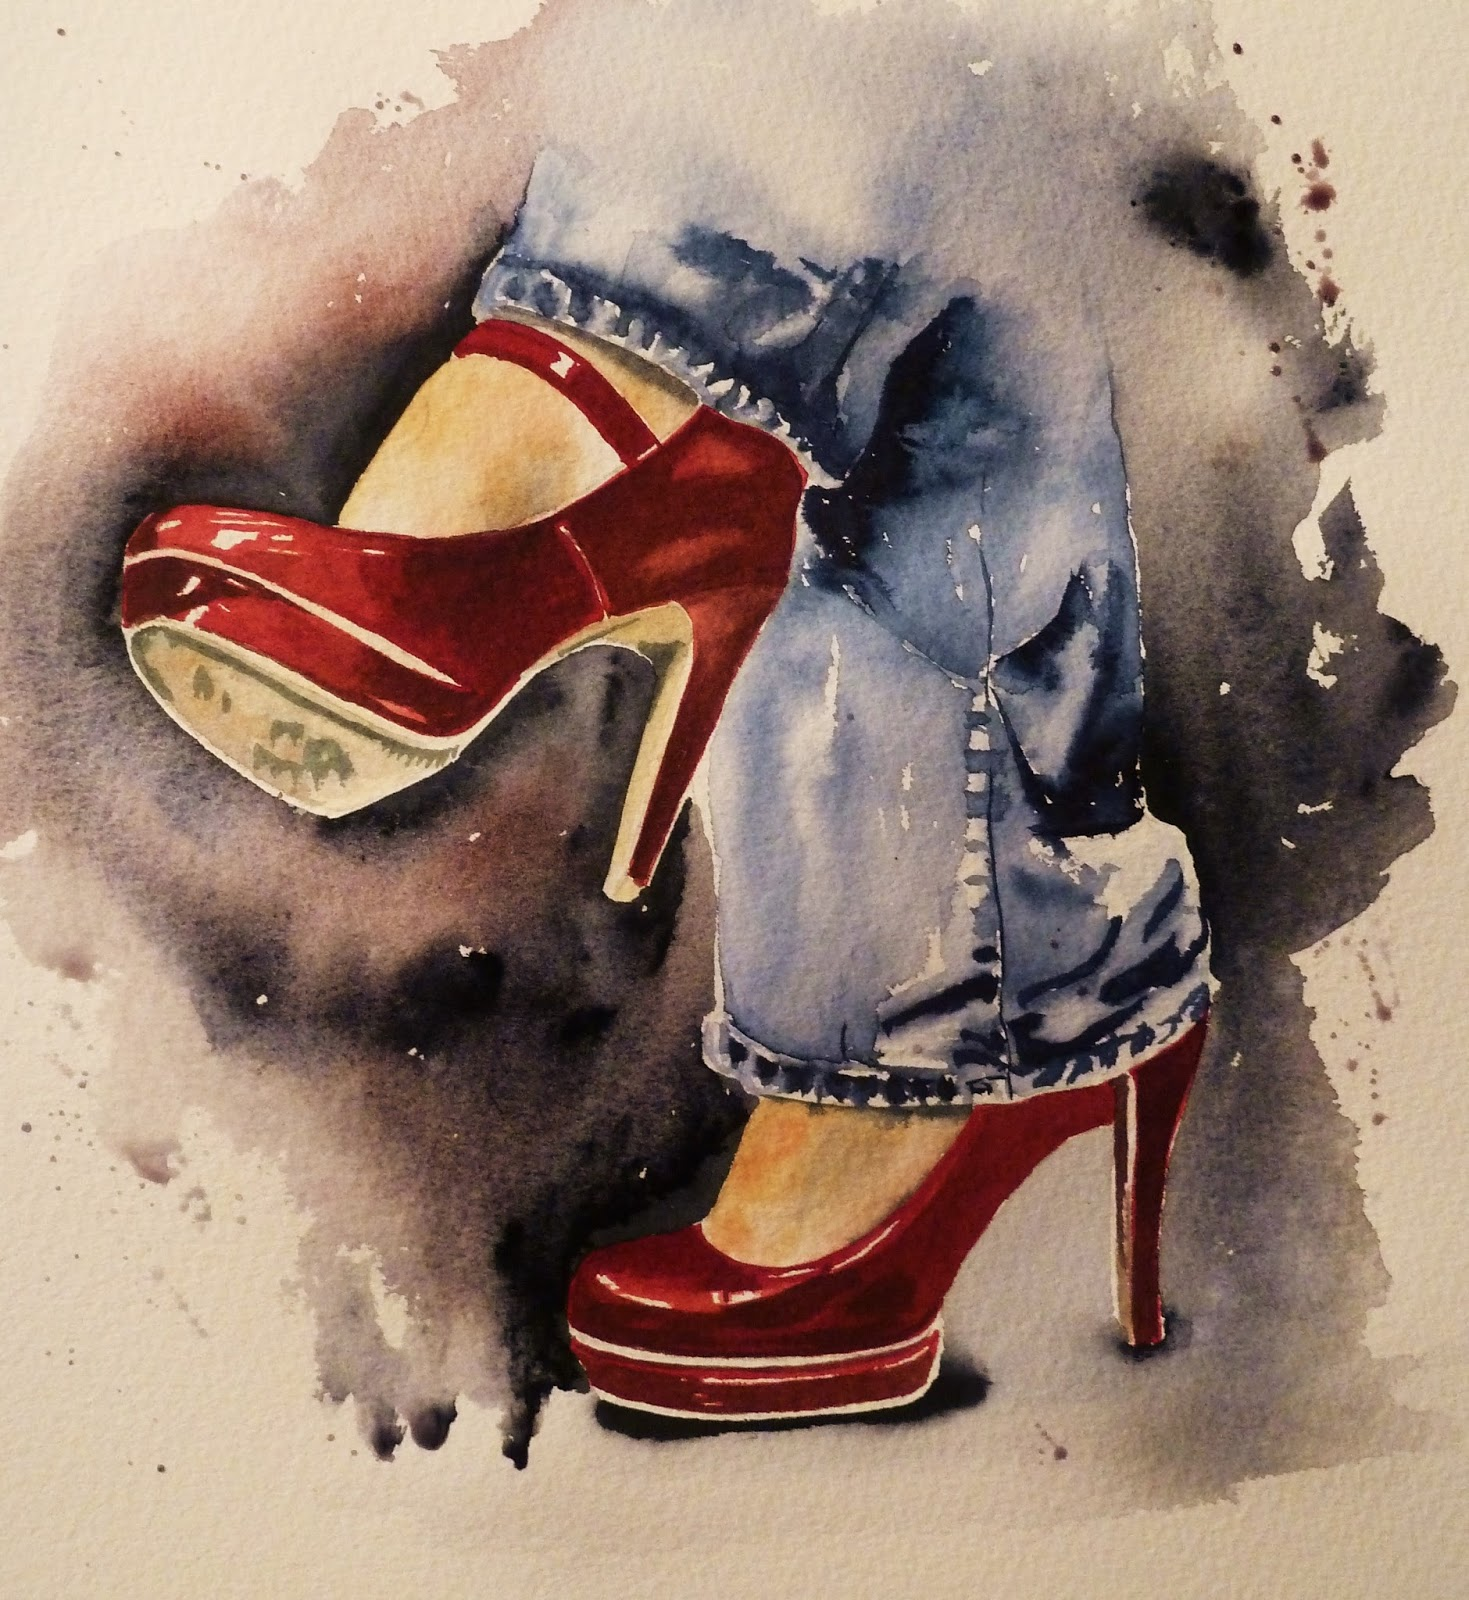 Art by Judith Farnworth: The Red Shoes